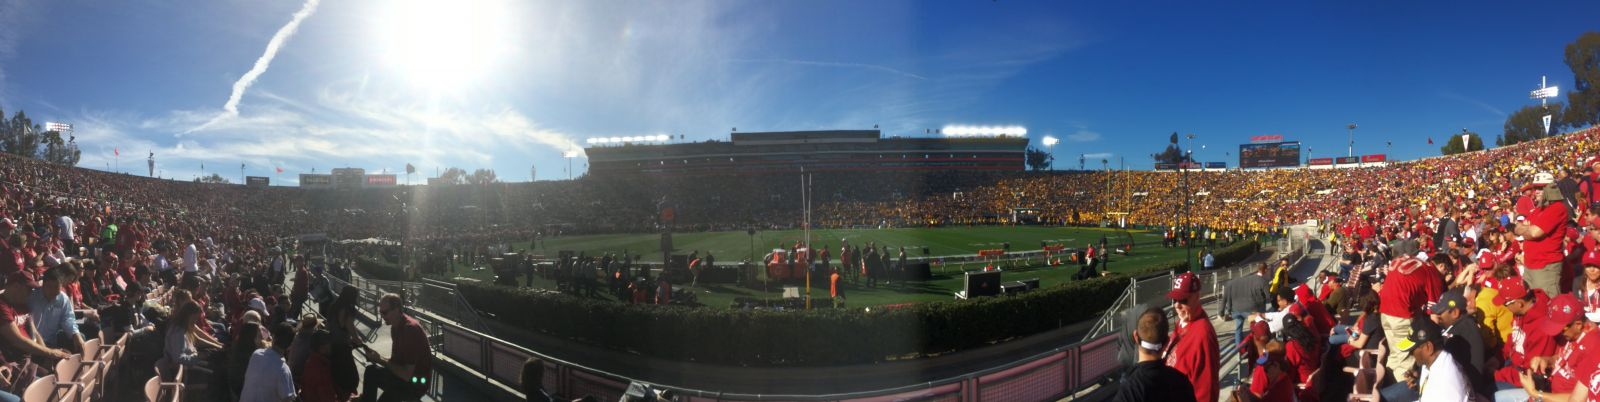 Seat View for Rose Bowl Stadium Section 5, Row 3, Seat 9